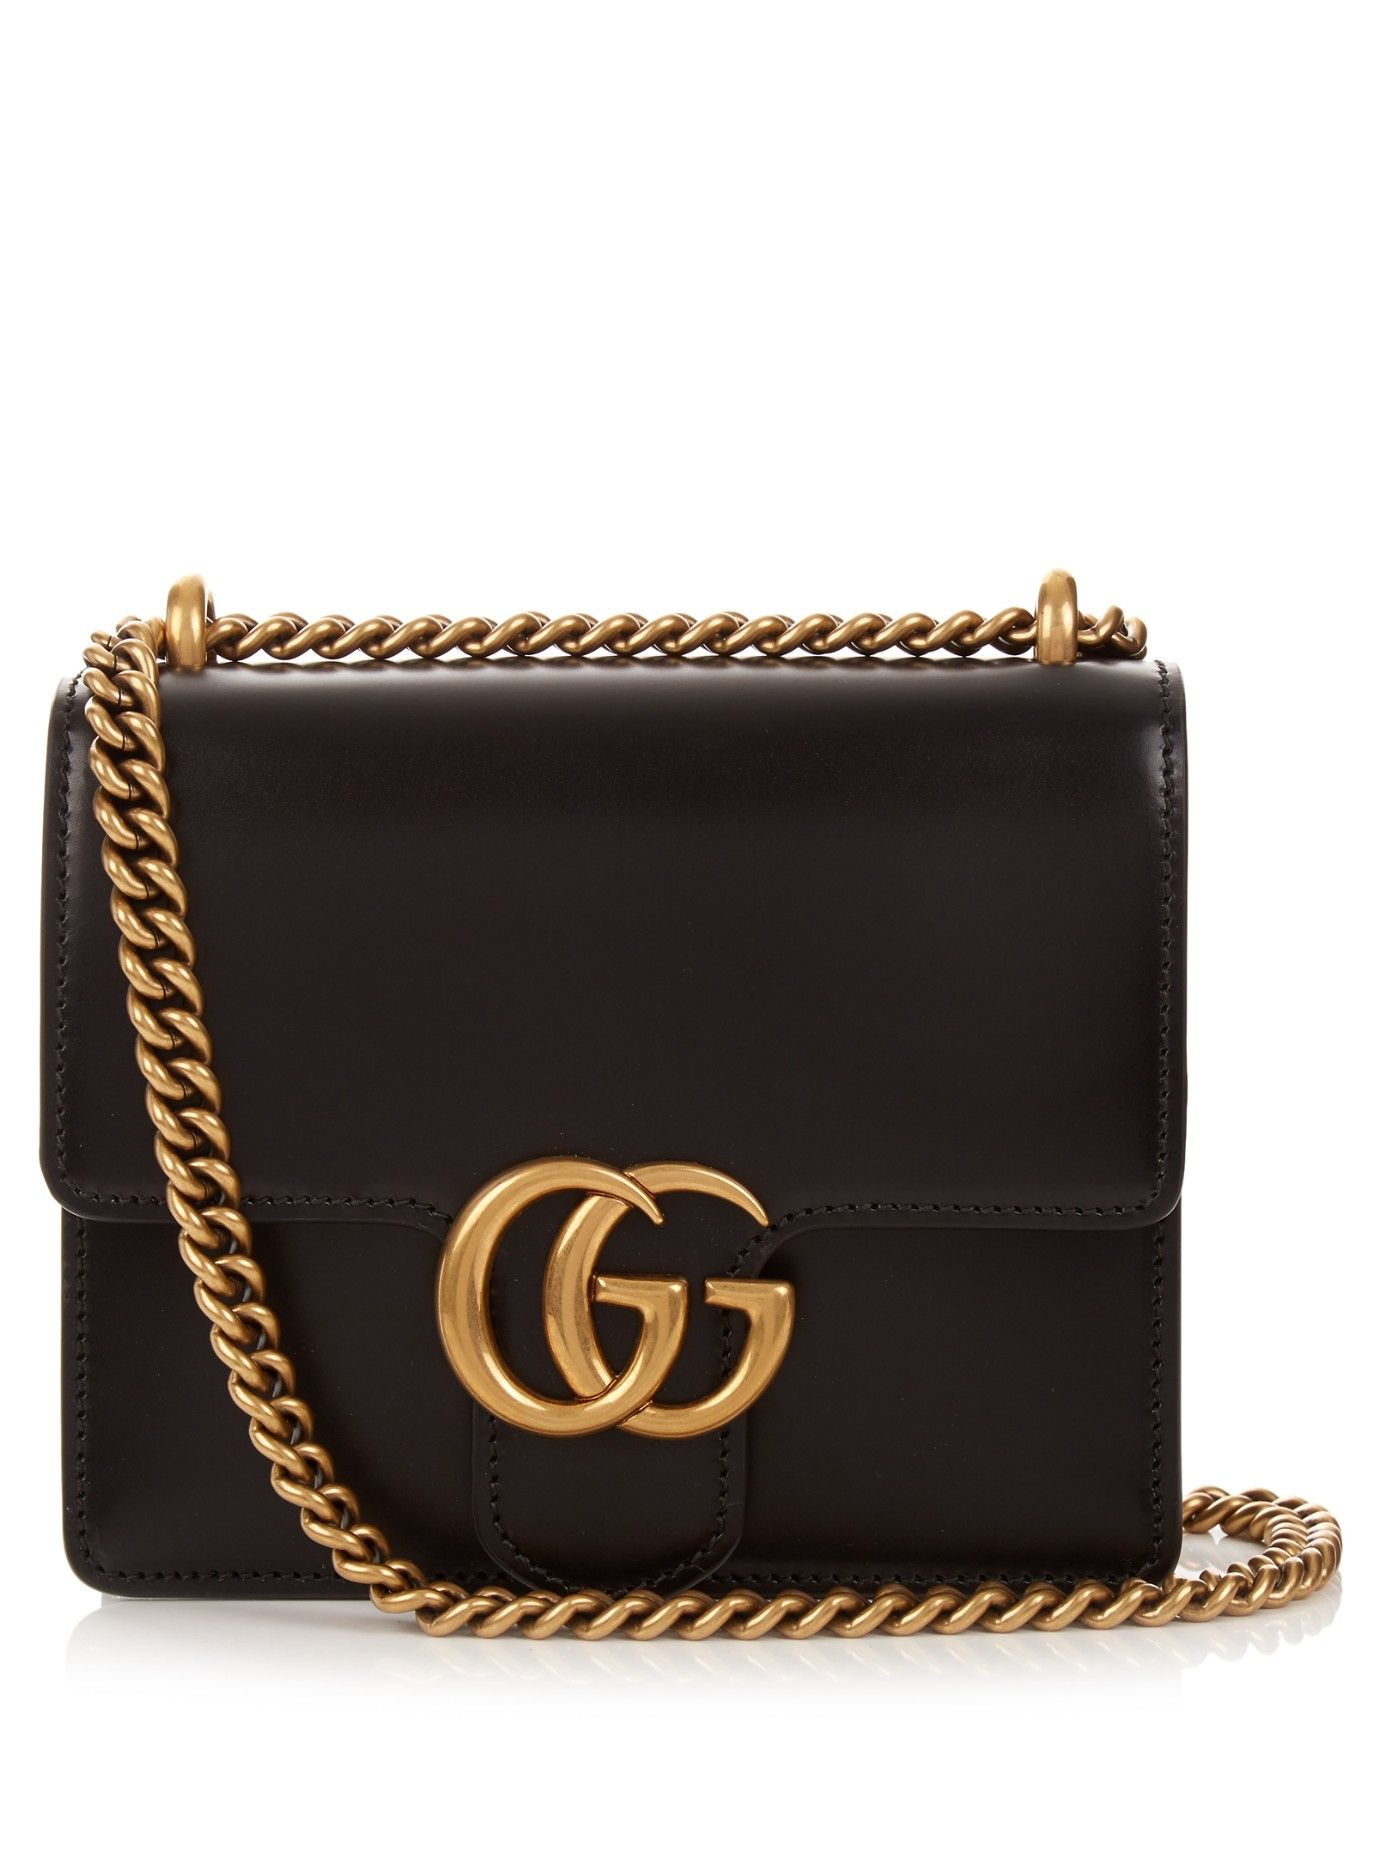 c8e89e25bcc Gucci s black smooth-leather GG Marmont bag subtly plays to the 1970s feel  of the label s new collection.